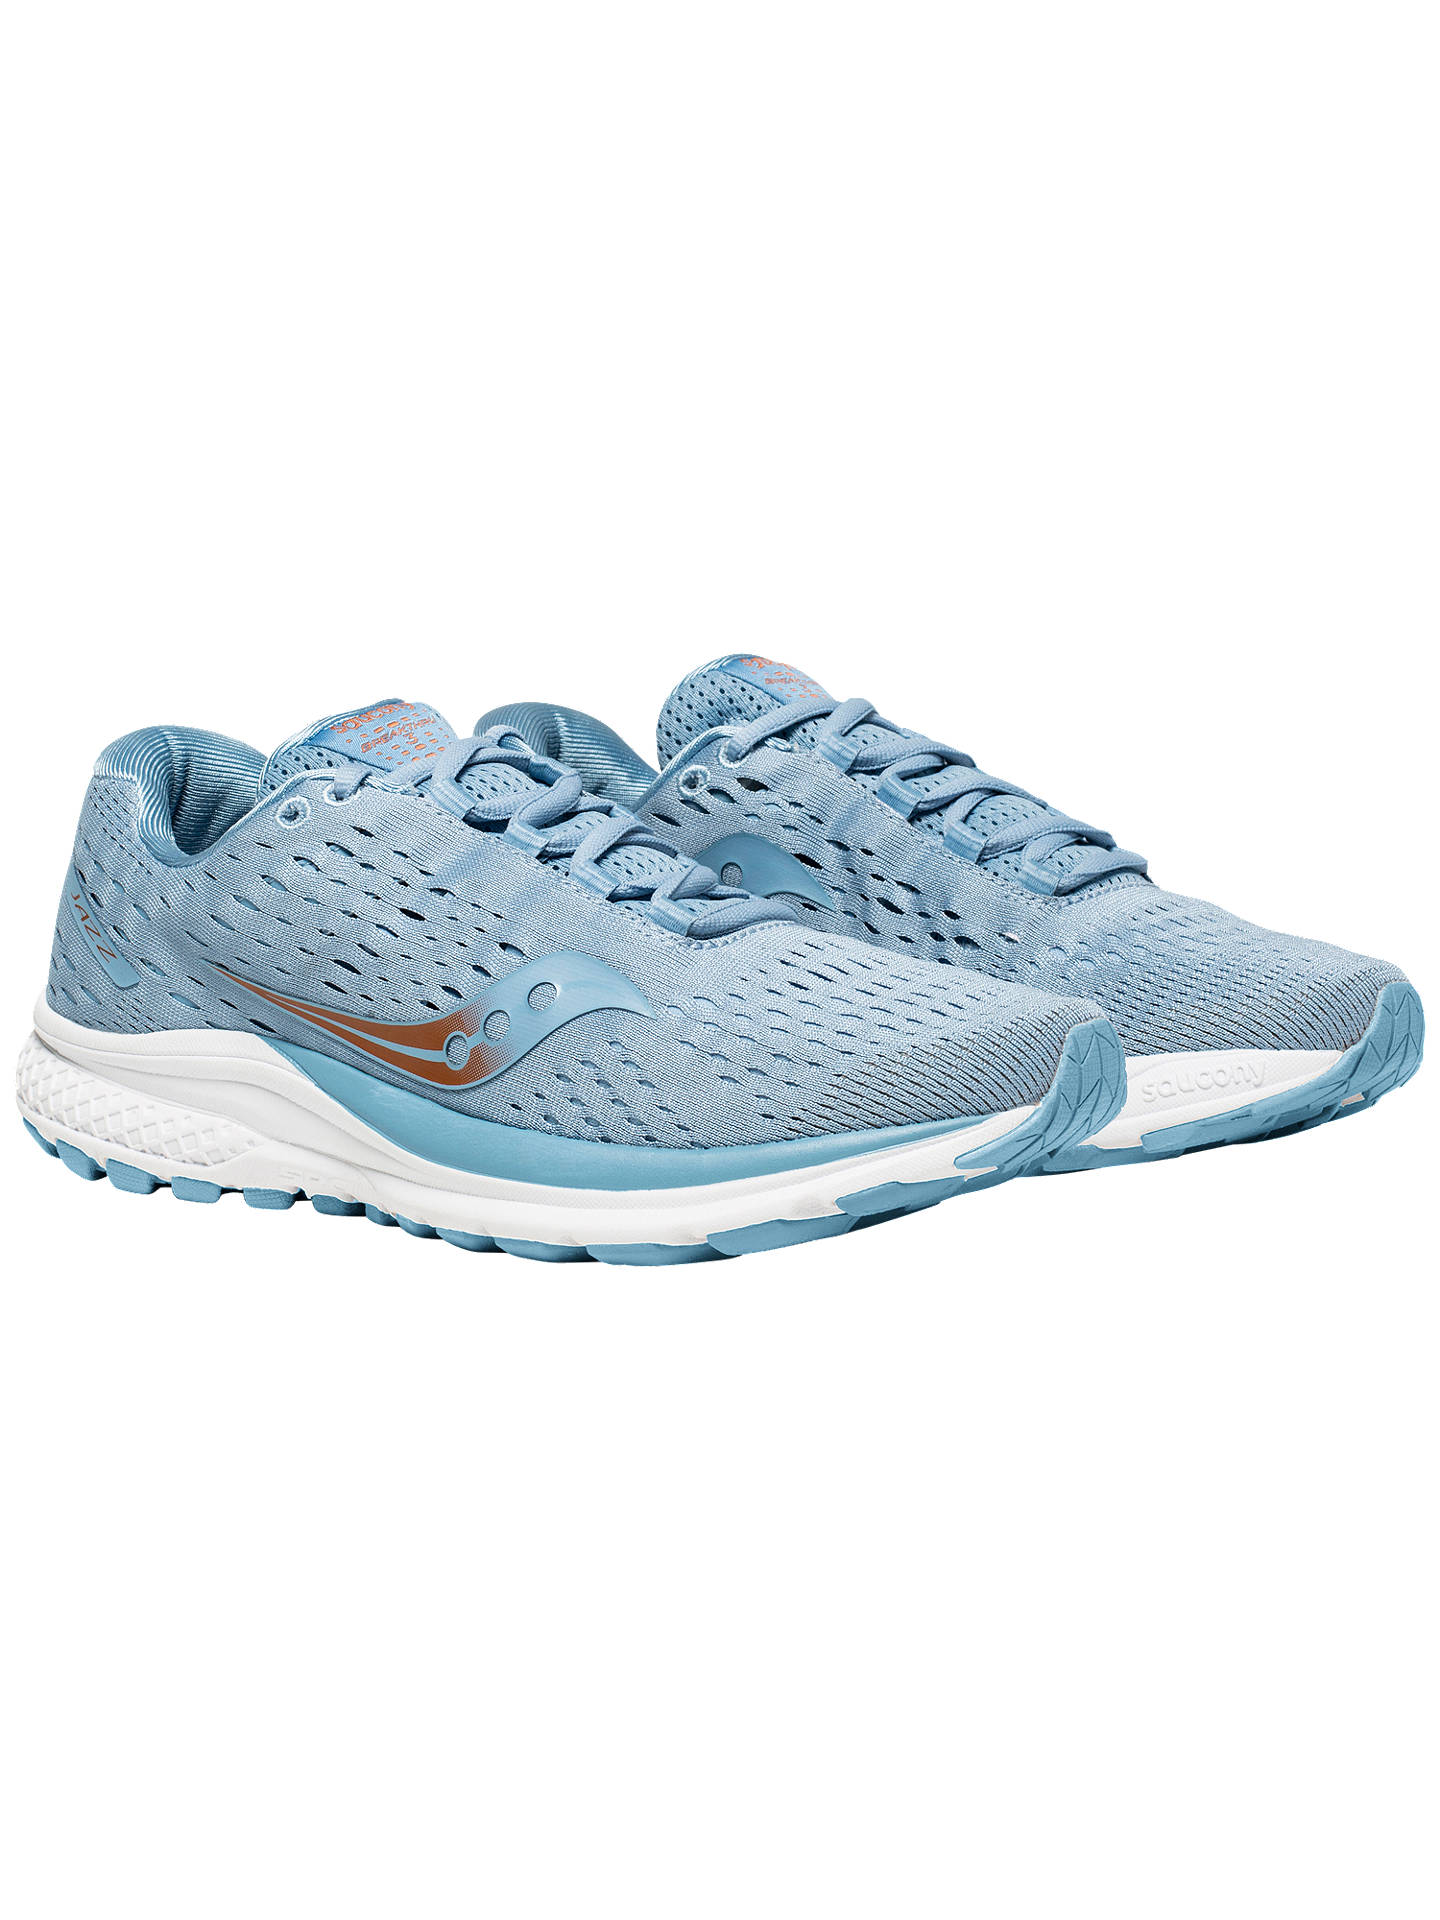 On Line Shopping Gift Vouchers For Running Shoes